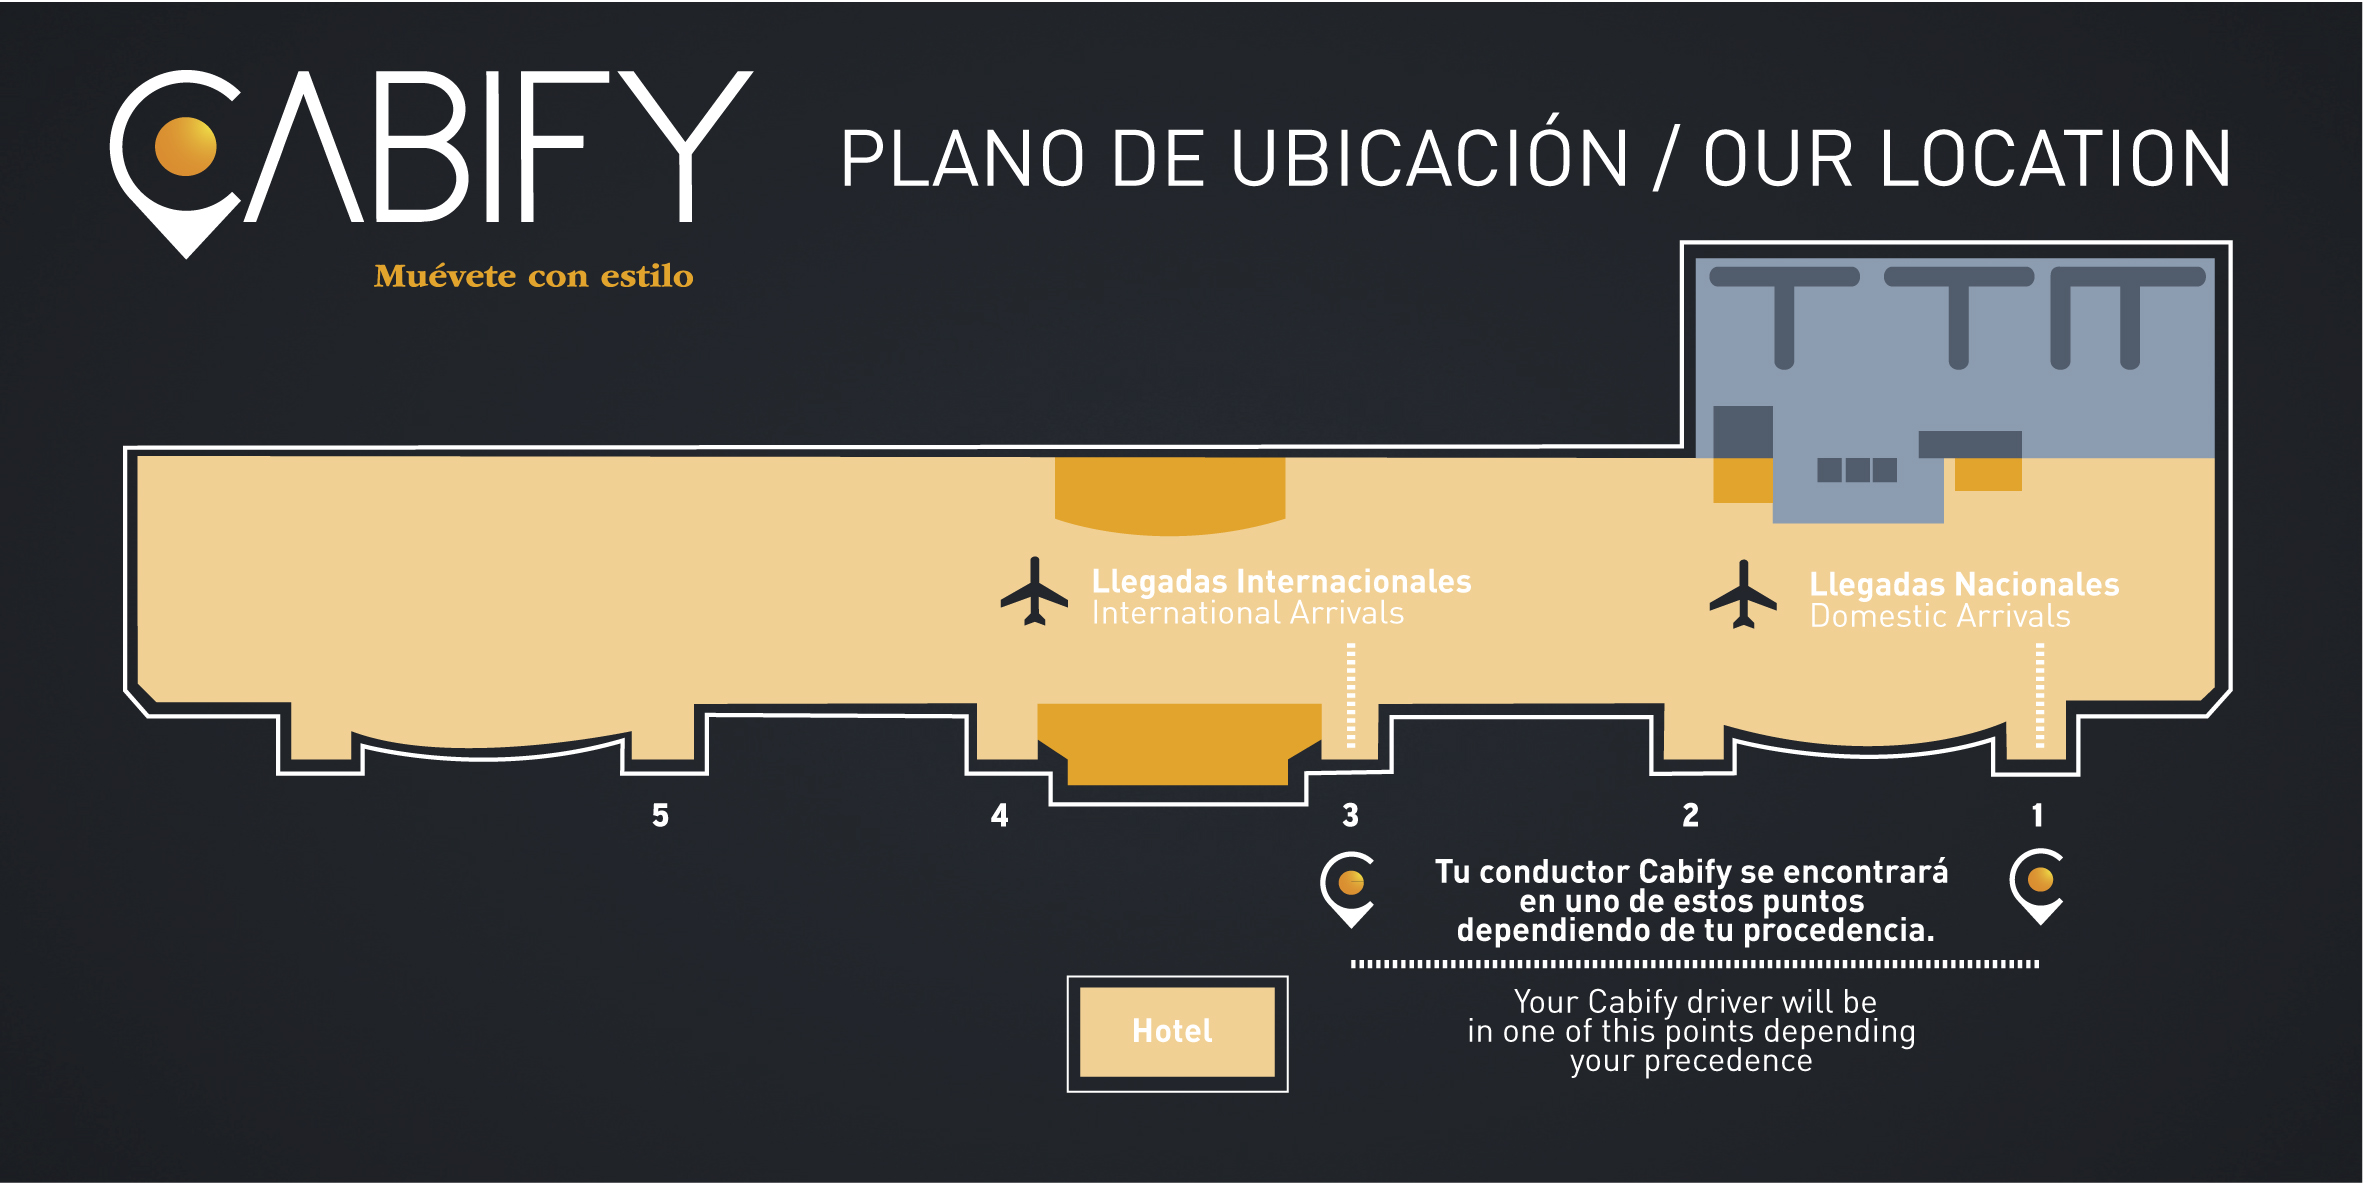 Cabify's airport pick up points (LIMA)